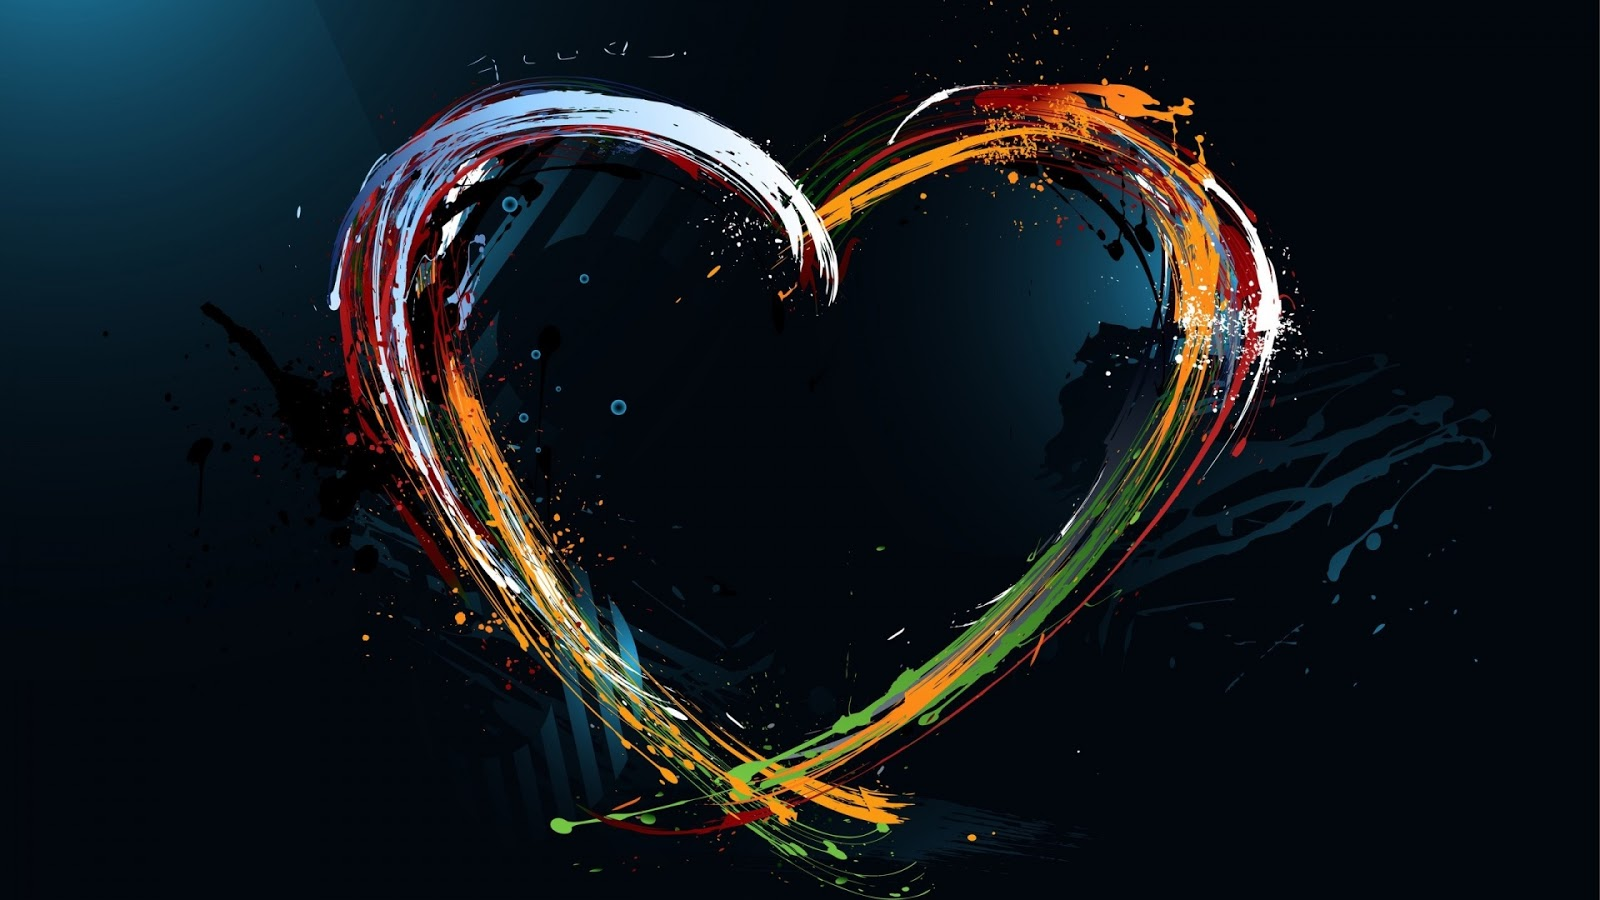 Love Abstract Design 1920x1080 Wallpaper